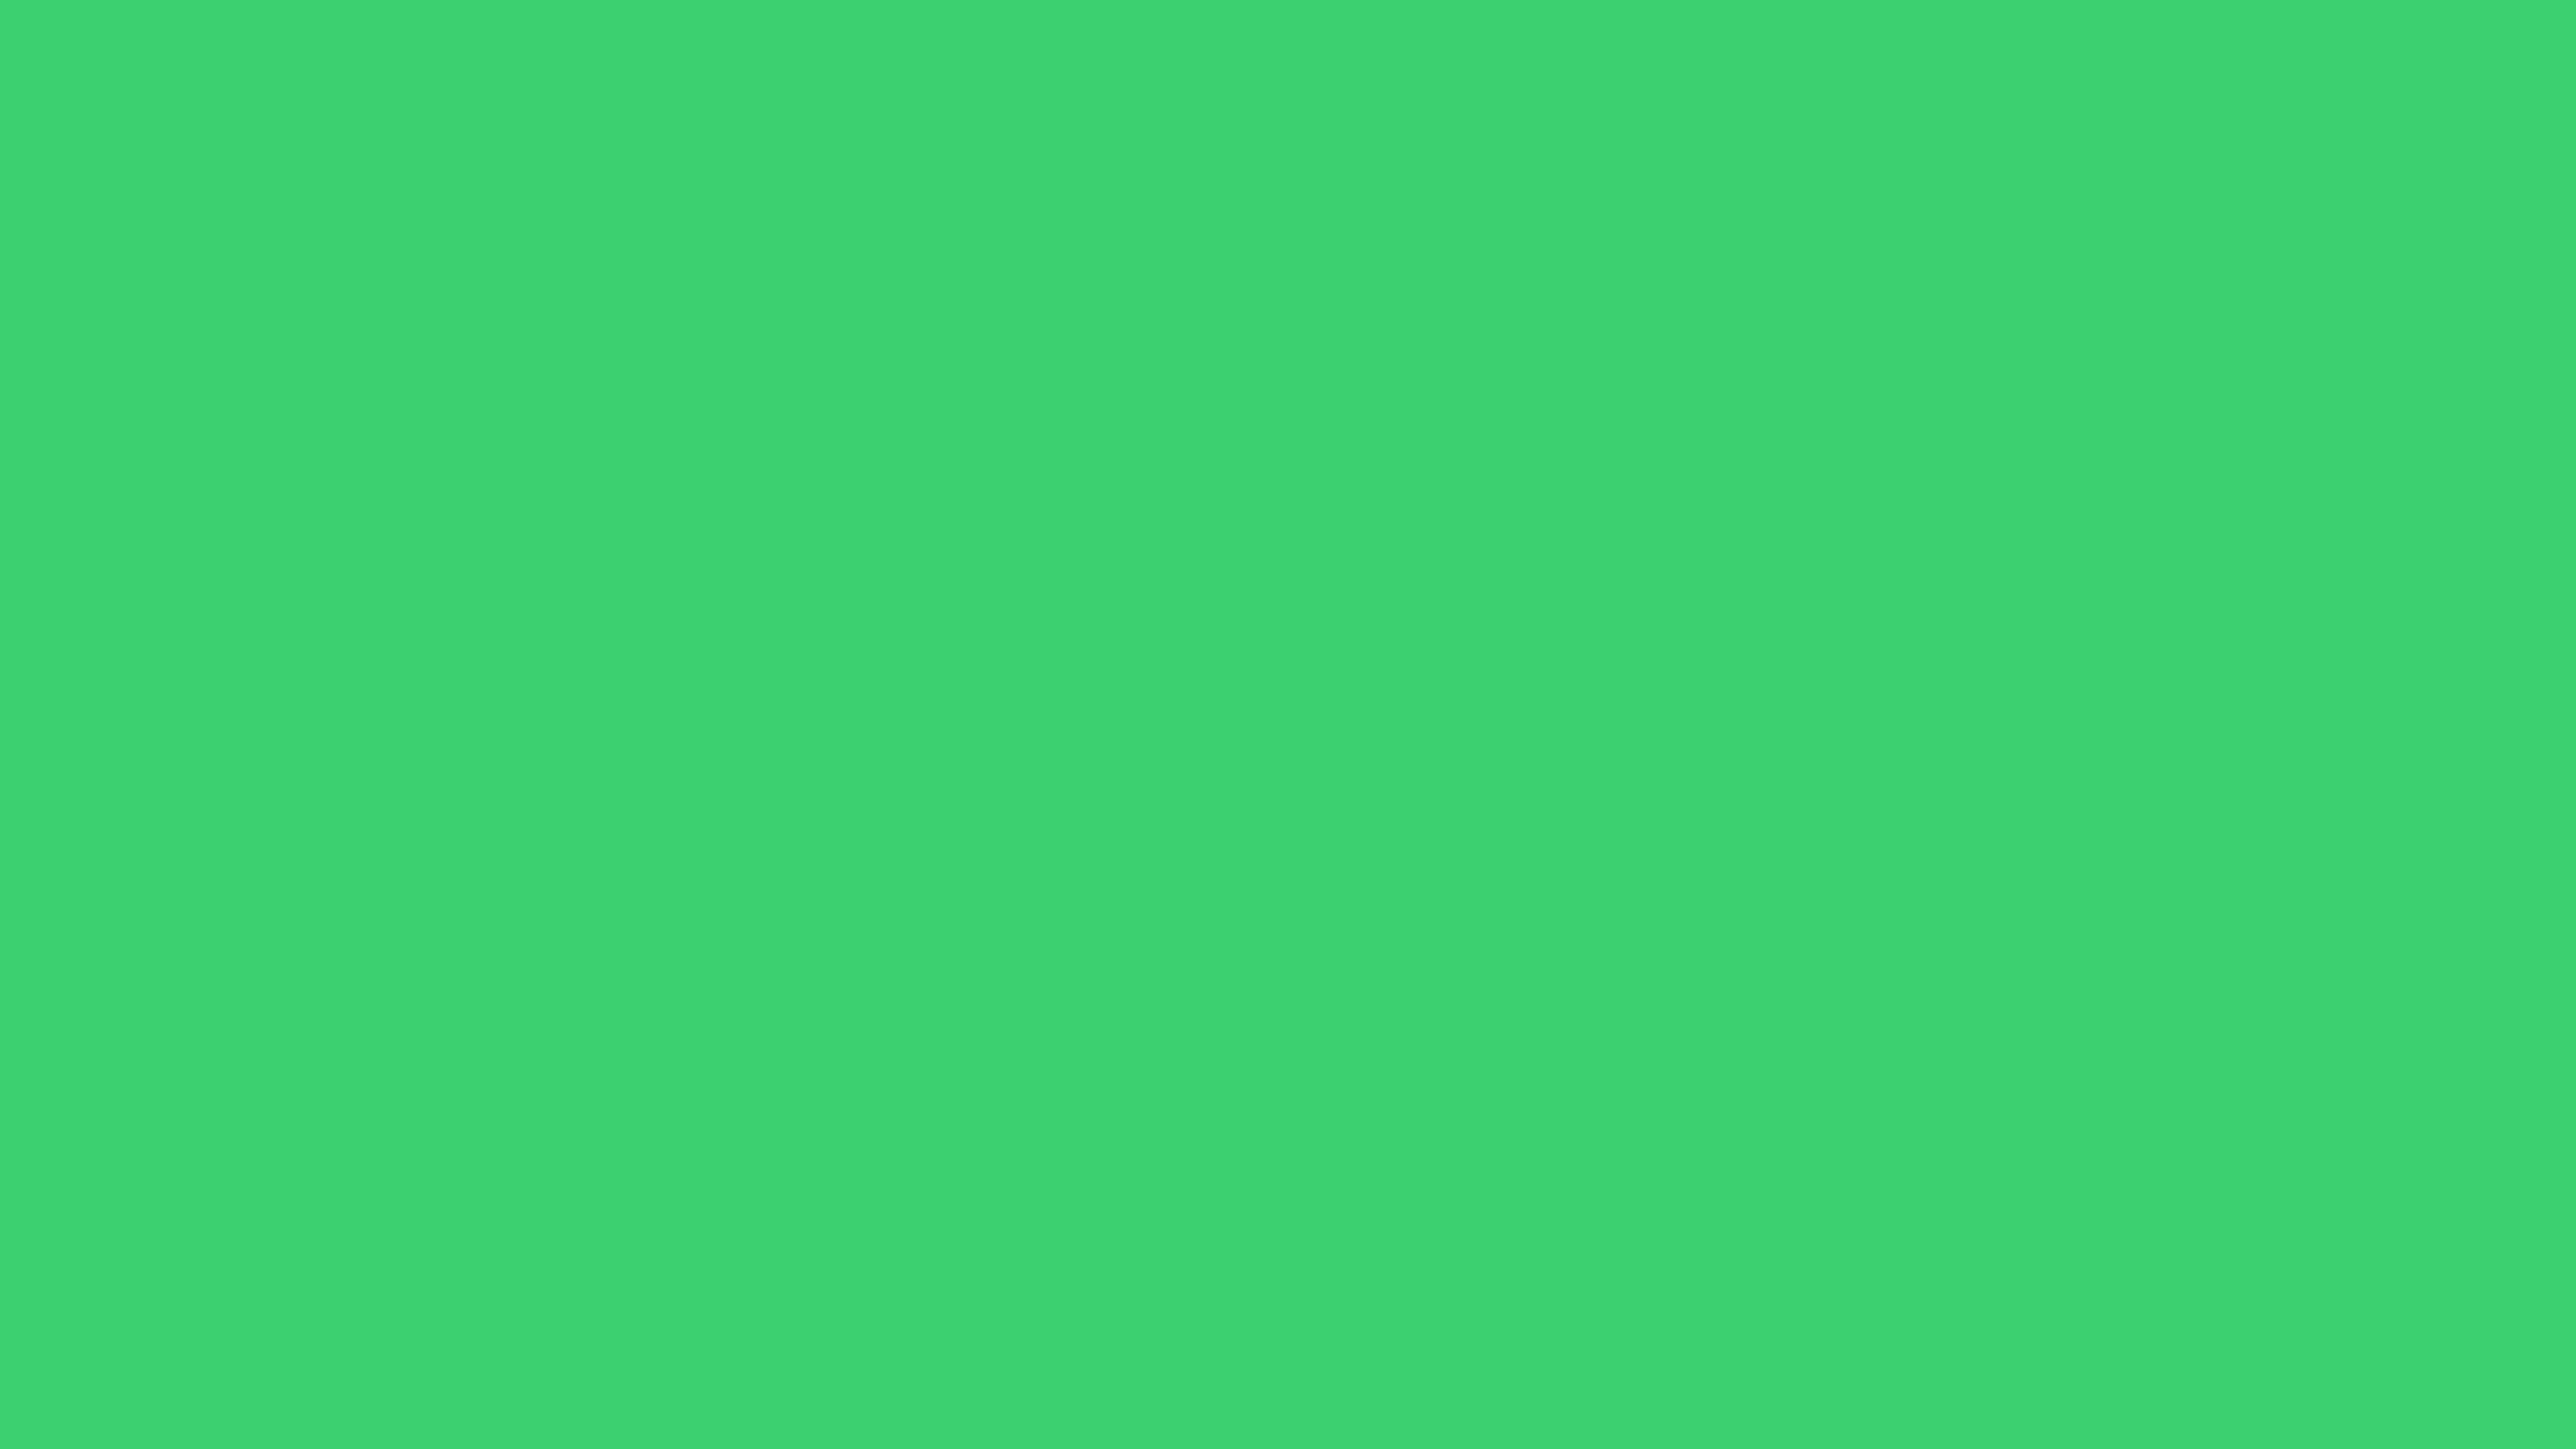 7680x4320 UFO Green Solid Color Background